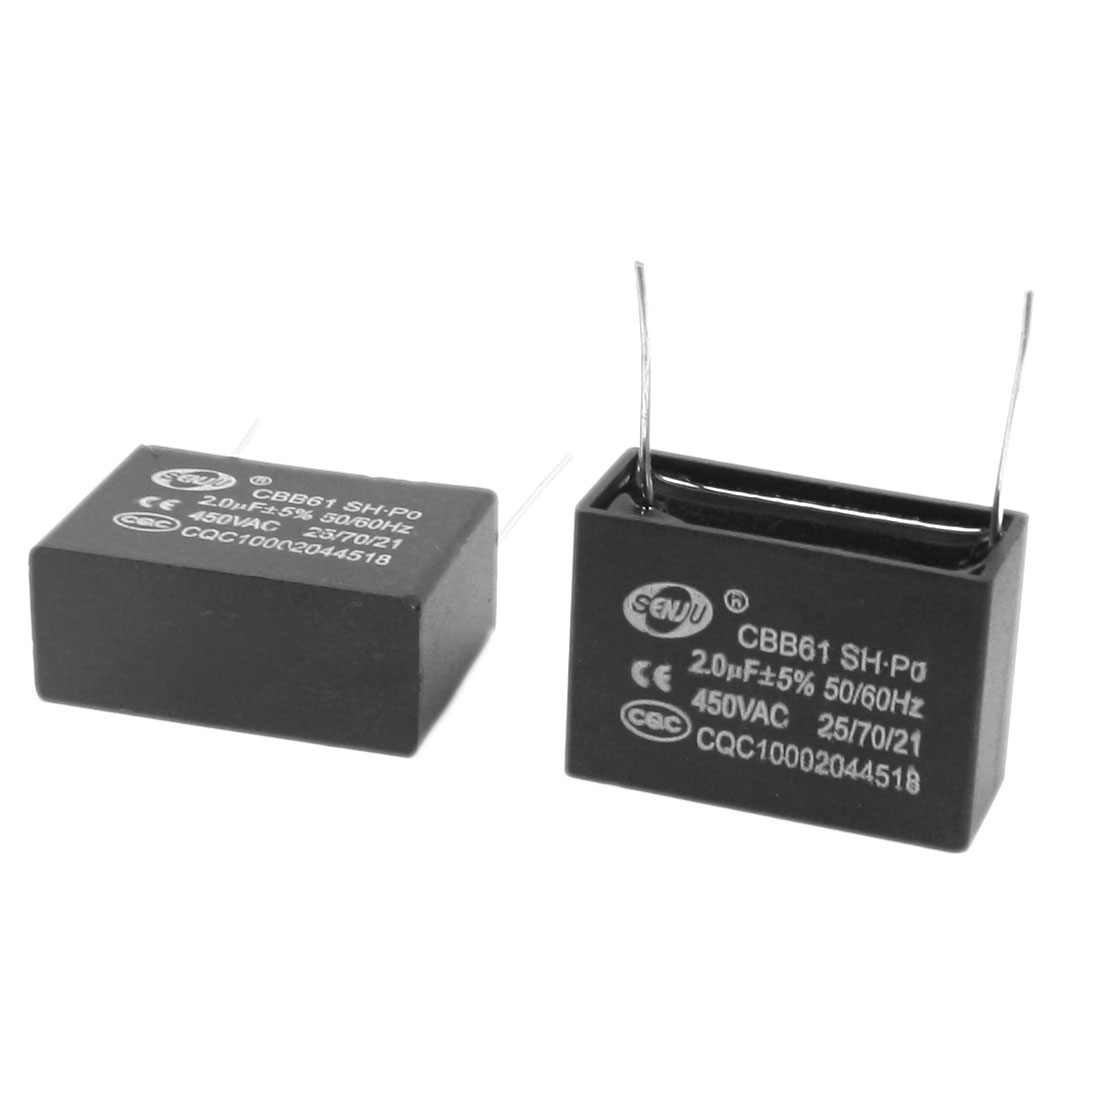 2 Pcs AC 450V 2uF 5% Tolerance 2 Pin Radial Lead Type Non Polar Polypropylene Film Air Condition Motor Running Capacitor Black